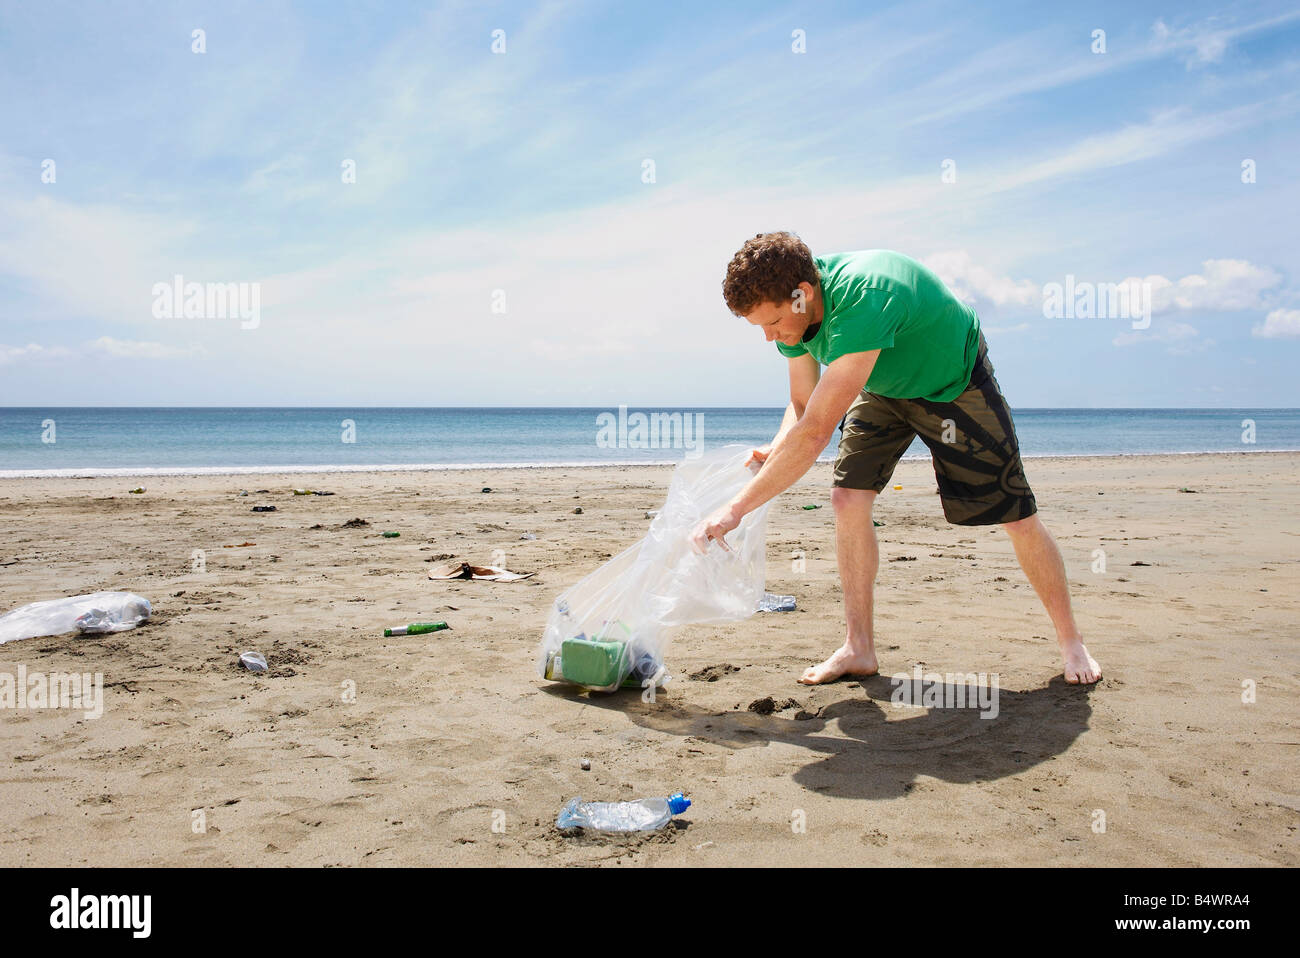 Young man collecting garbage on beach - Stock Image